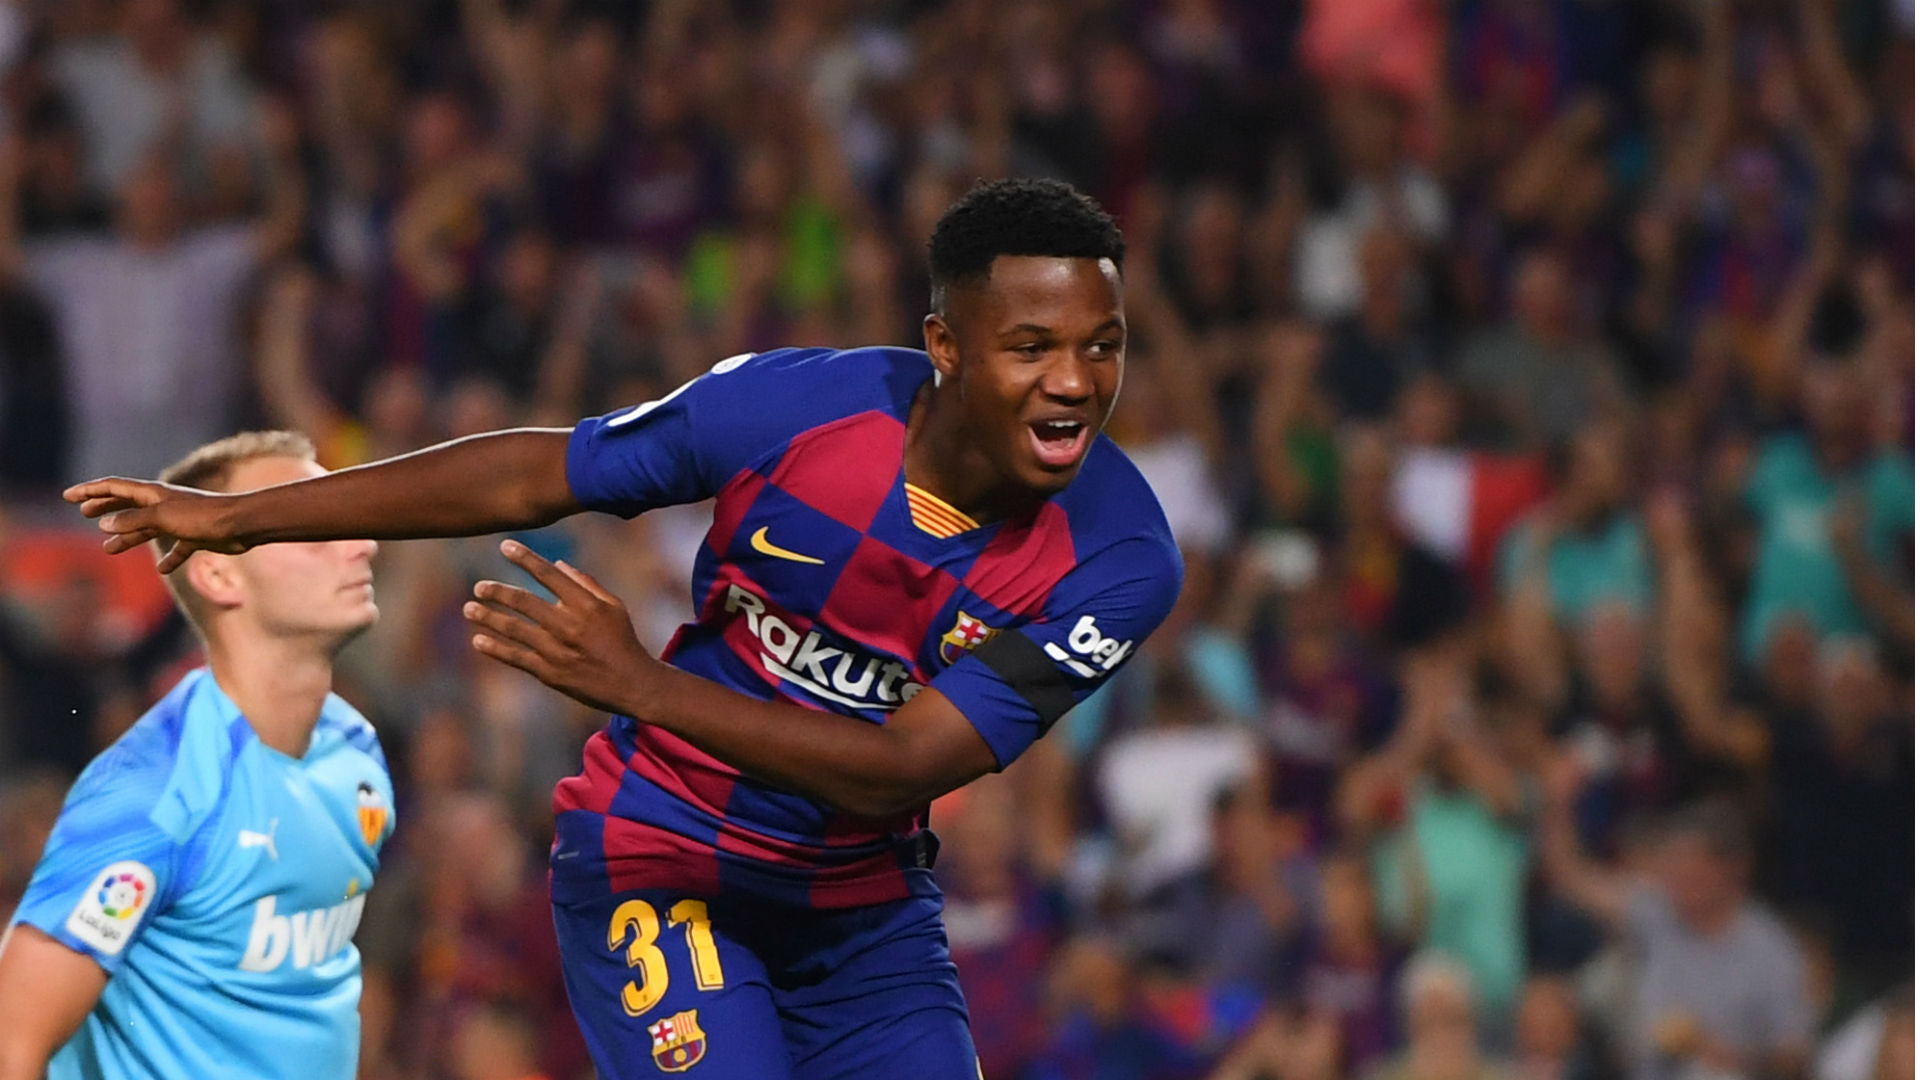 Barcelona teenager Ansu Fati must be treated with patience - Lenglet